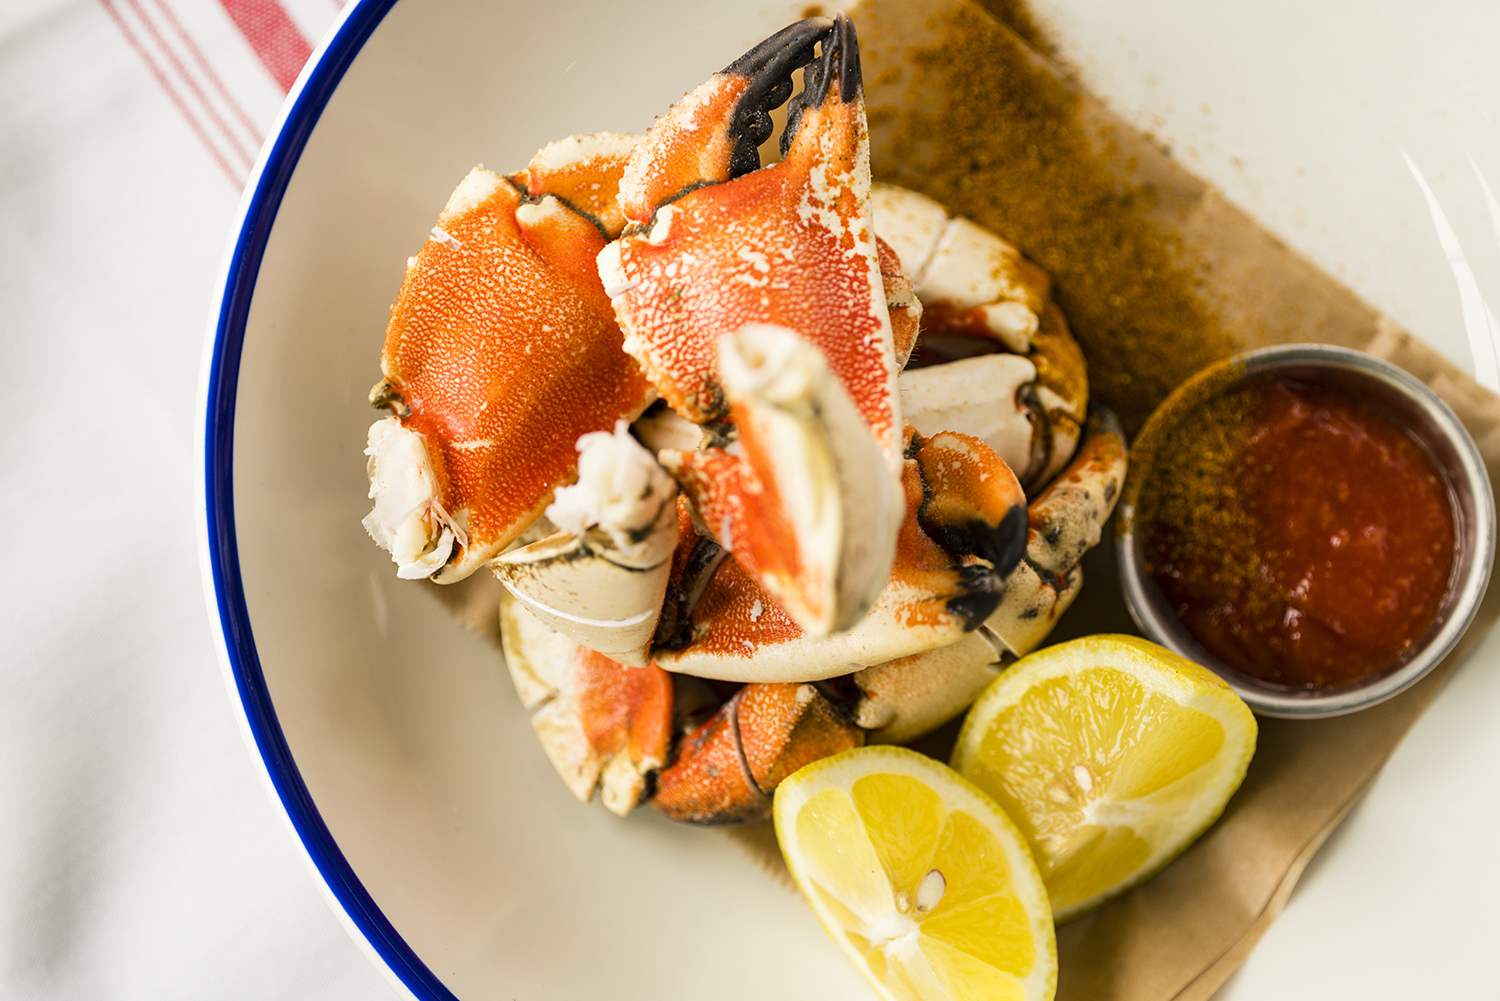 CHILLED CRAB CLAWS